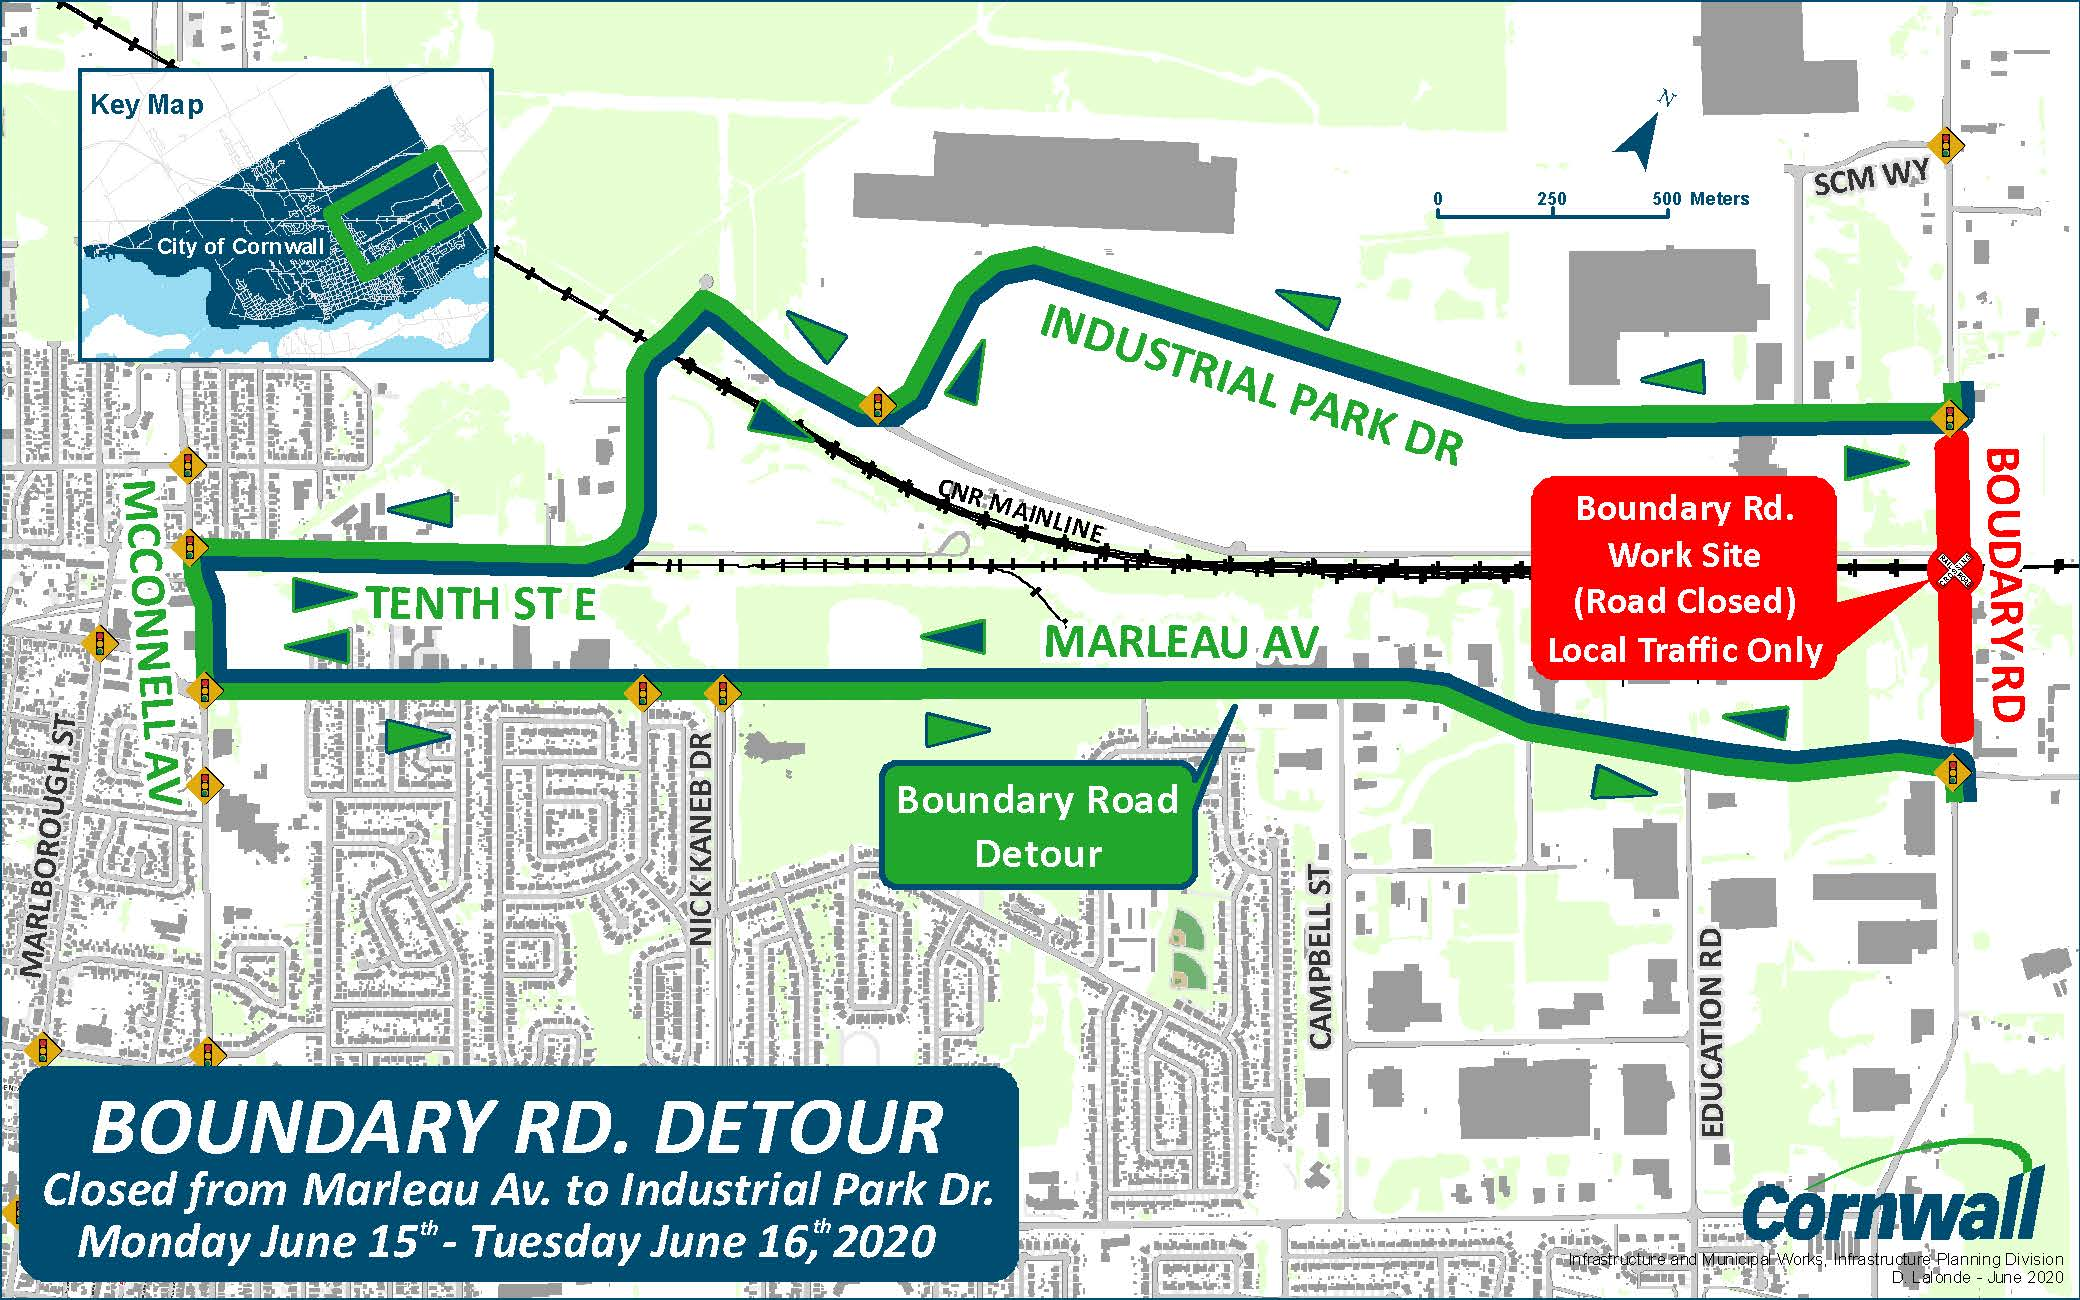 Image of map with section of Boundary road closed for repairs to CN Tracks